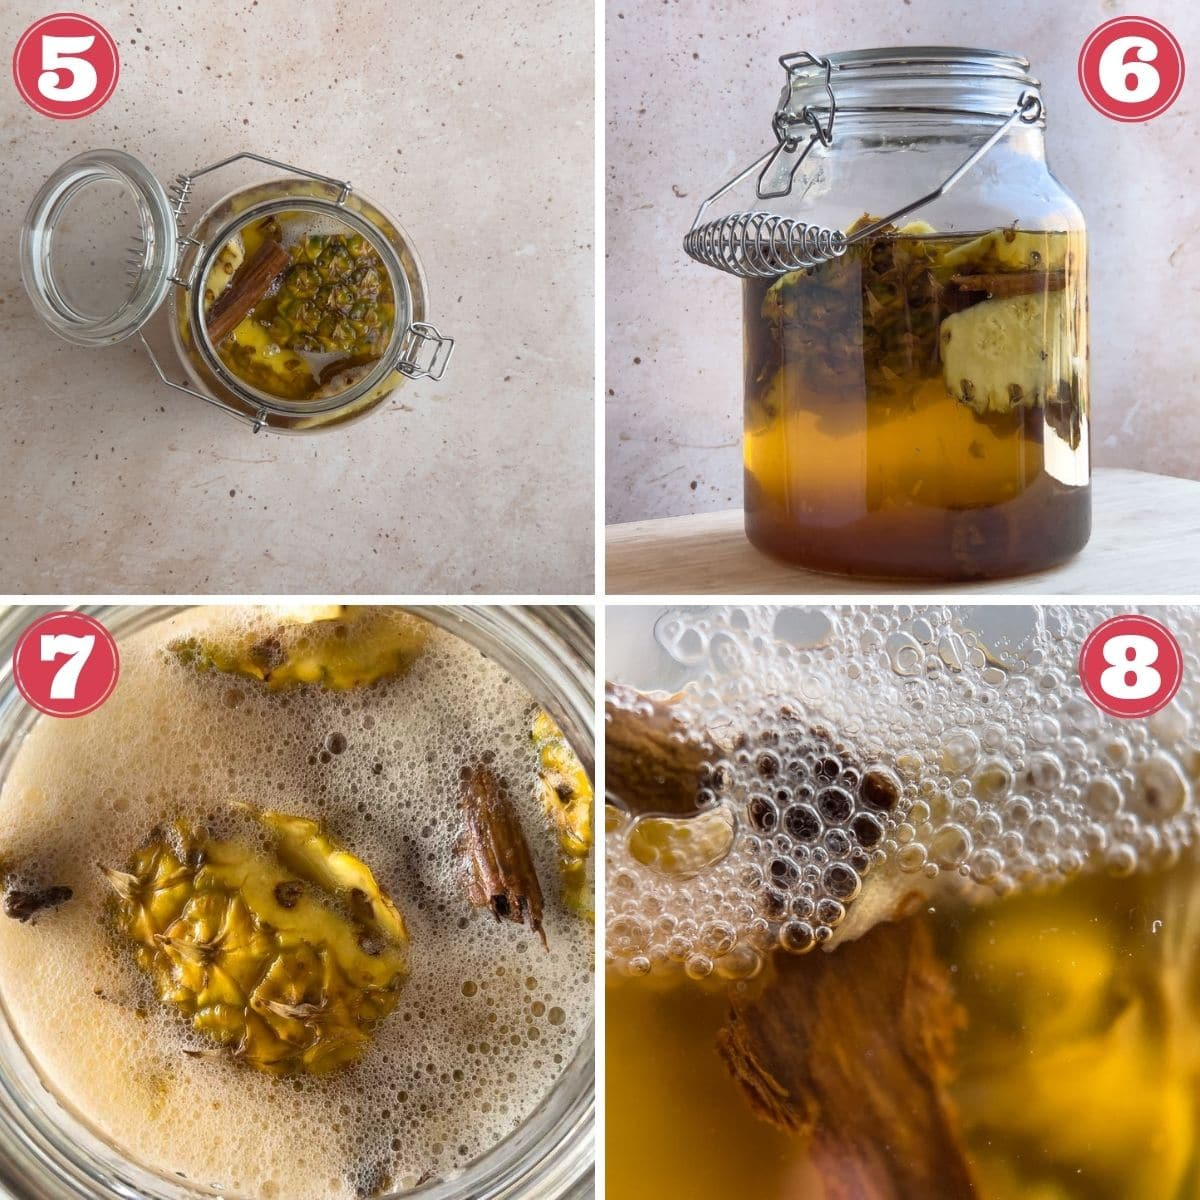 from left to right cinnamon added to jar full pf pineapple skins, liquid added to jar, surface of jar after fermentation, fermentation bubbles